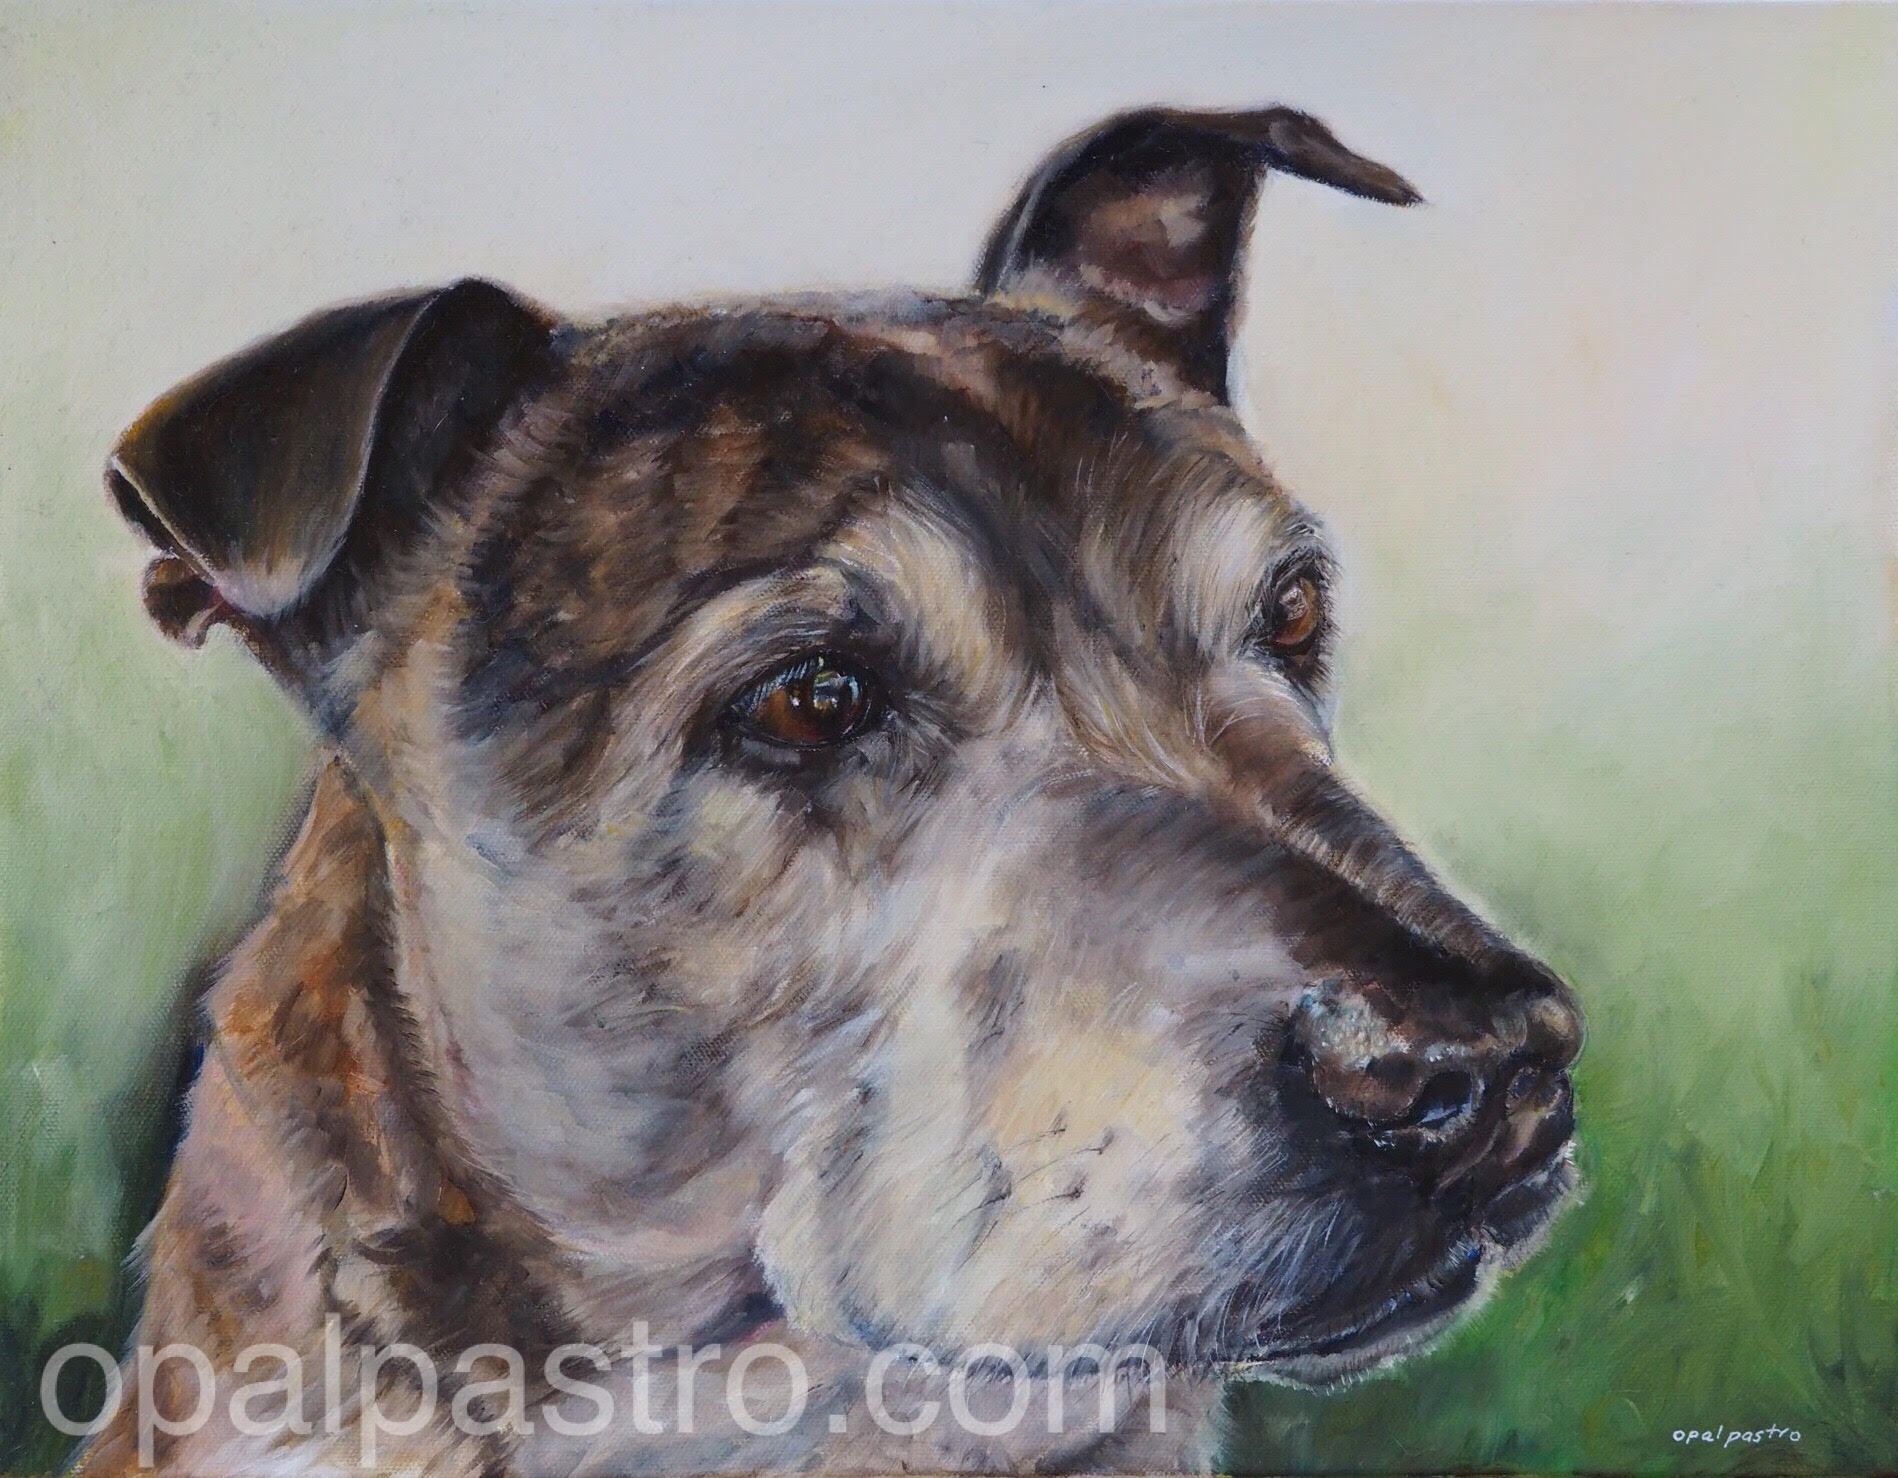 Final pass - And here is the lovely Frank's portrait.Final layer painted in water soluble oils (Windsor and Newton Artisan)